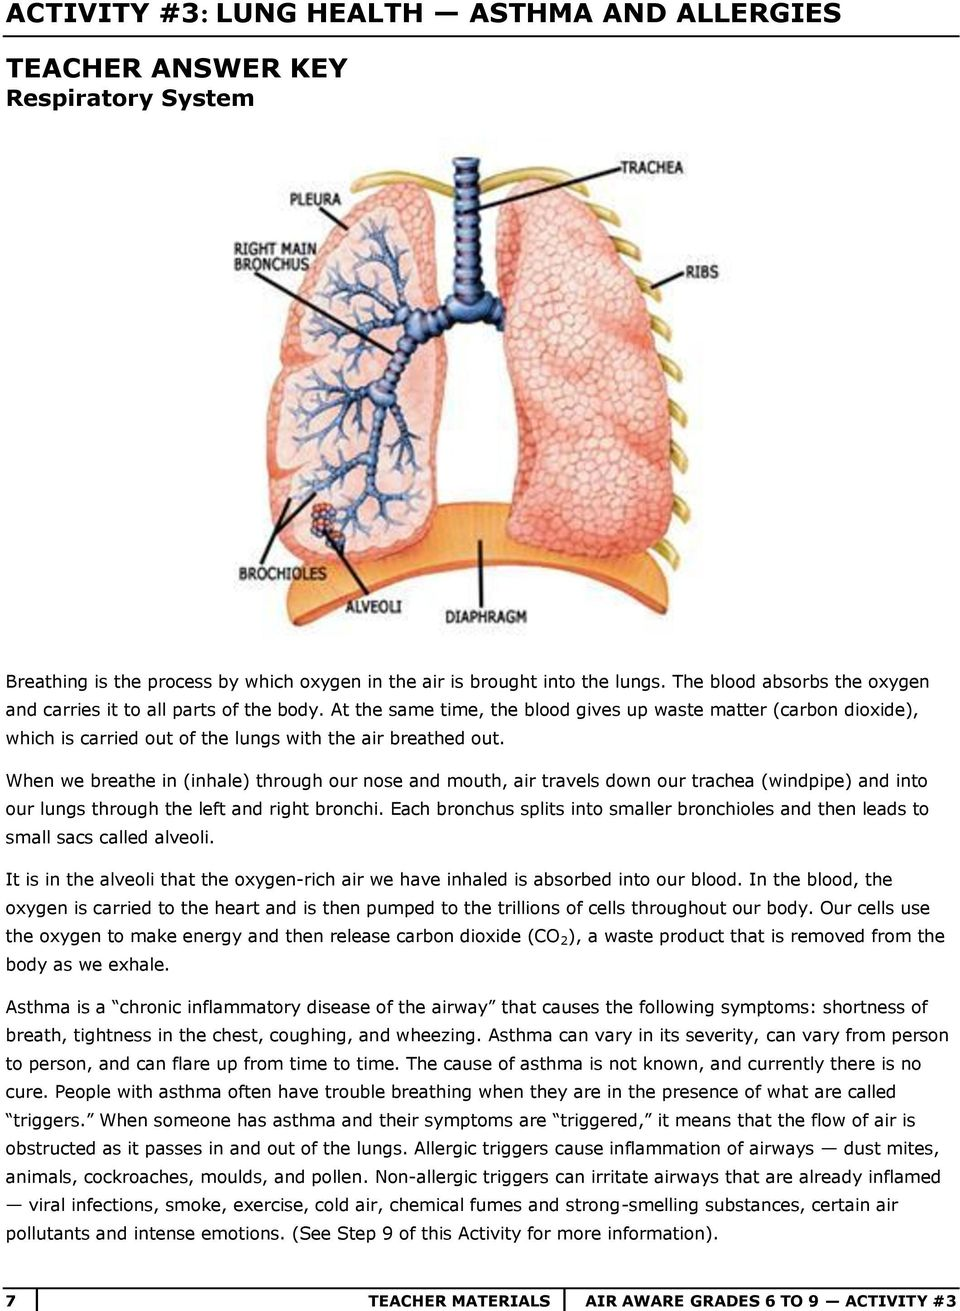 When we breathe in (inhale) through our nose and mouth, air travels down our trachea (windpipe) and into our lungs through the left and right bronchi.